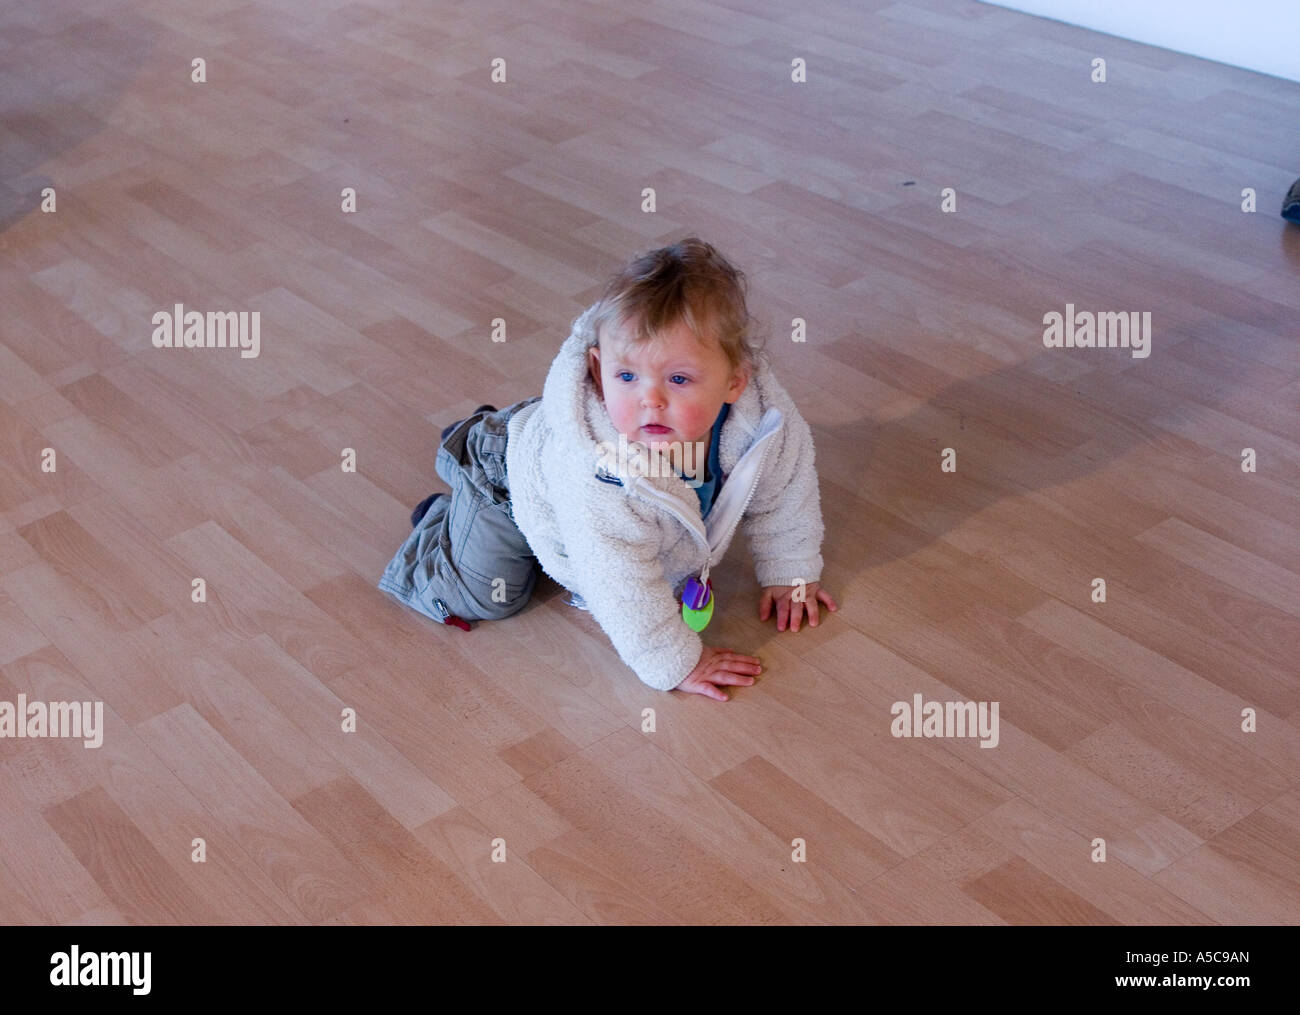 One year old baby boy playing on laminated wooden floor - Stock Image